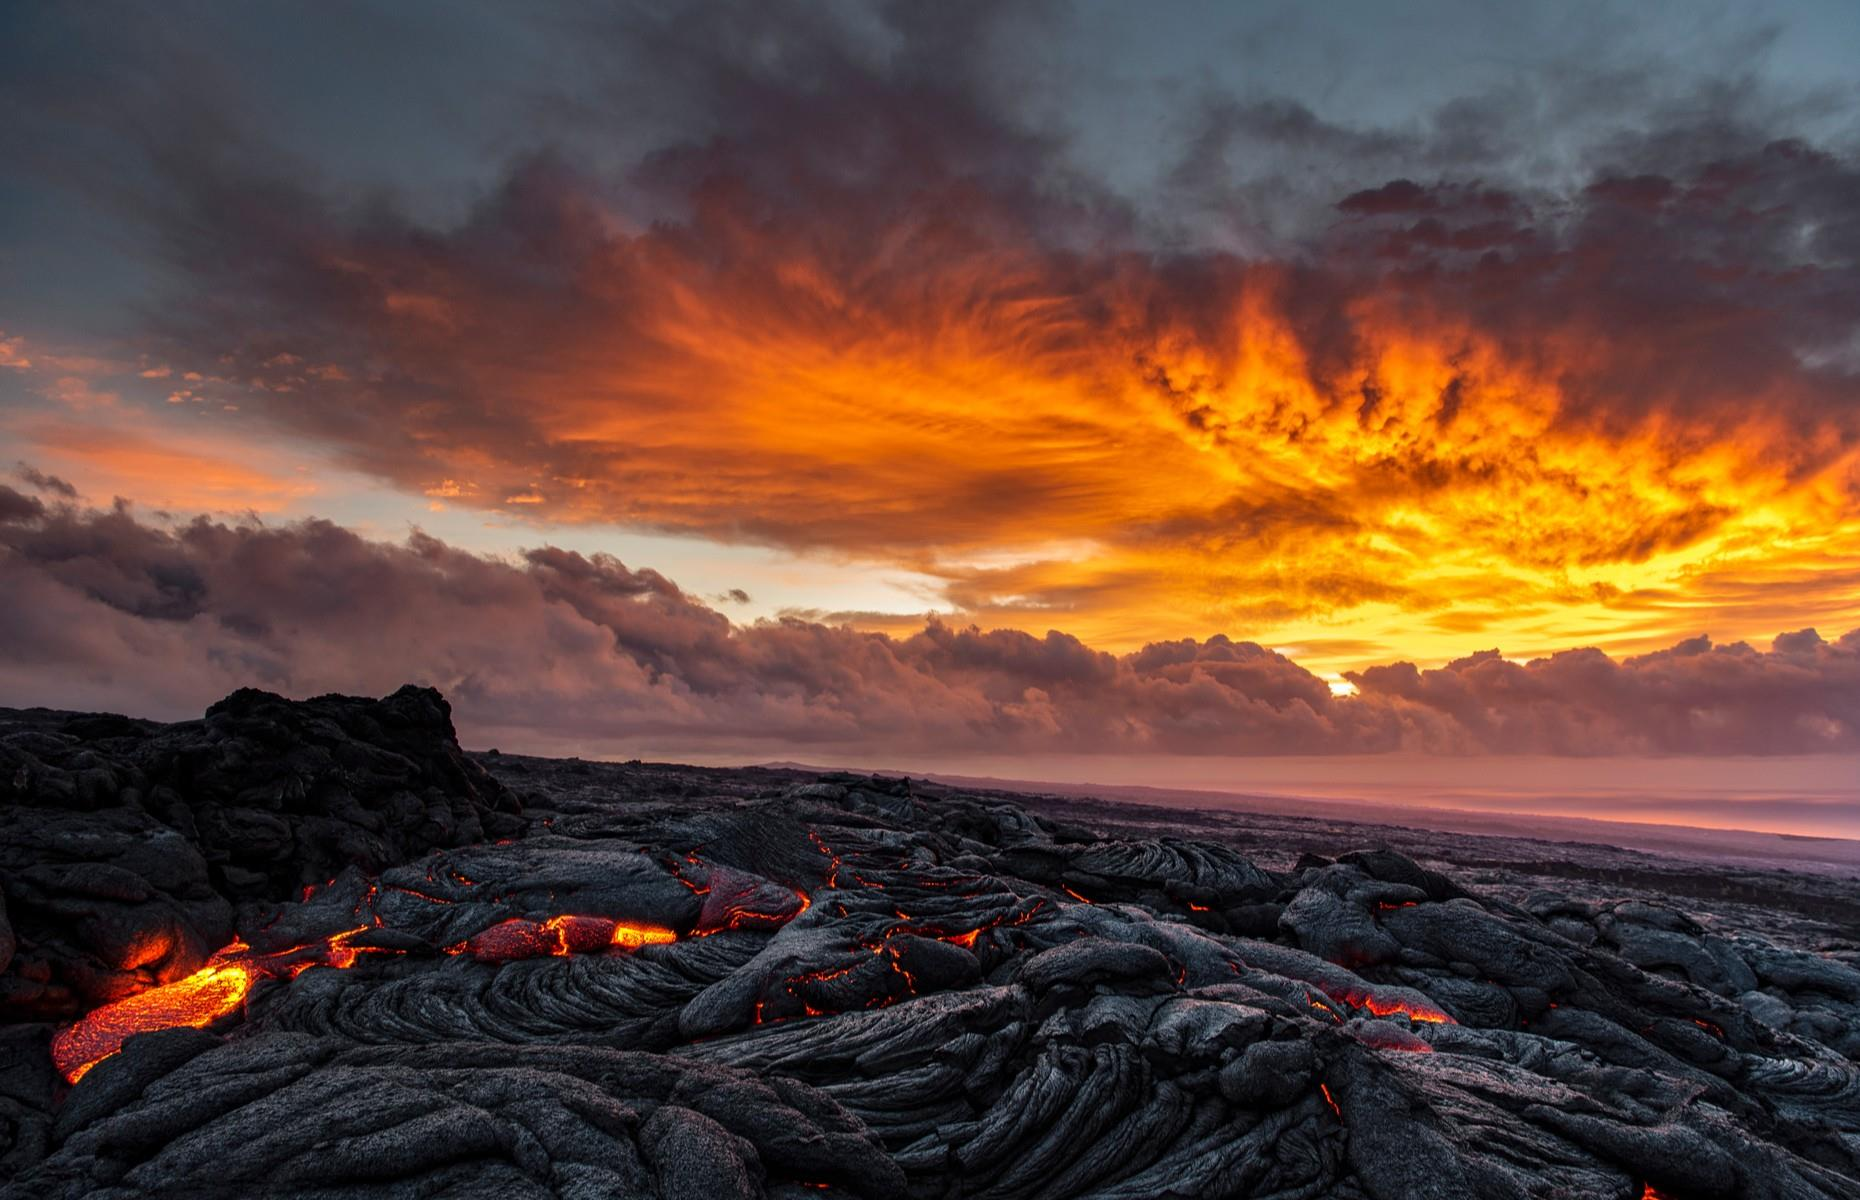 Slide 2 of 31: Making it into the top 30 with just over 25,000 posts, tucked away from Hawaii's pristine sandy beaches, the Hawai'i Volcanoes National Parkis like another planet. Established in 1916 on the Big Island, the park is home to Kīlauea, one of the most active volcanoes in the world. Kīlauea's lava continuously flows across the rocky wasteland, with steam rising from the cracked earth resembling a scene from space.